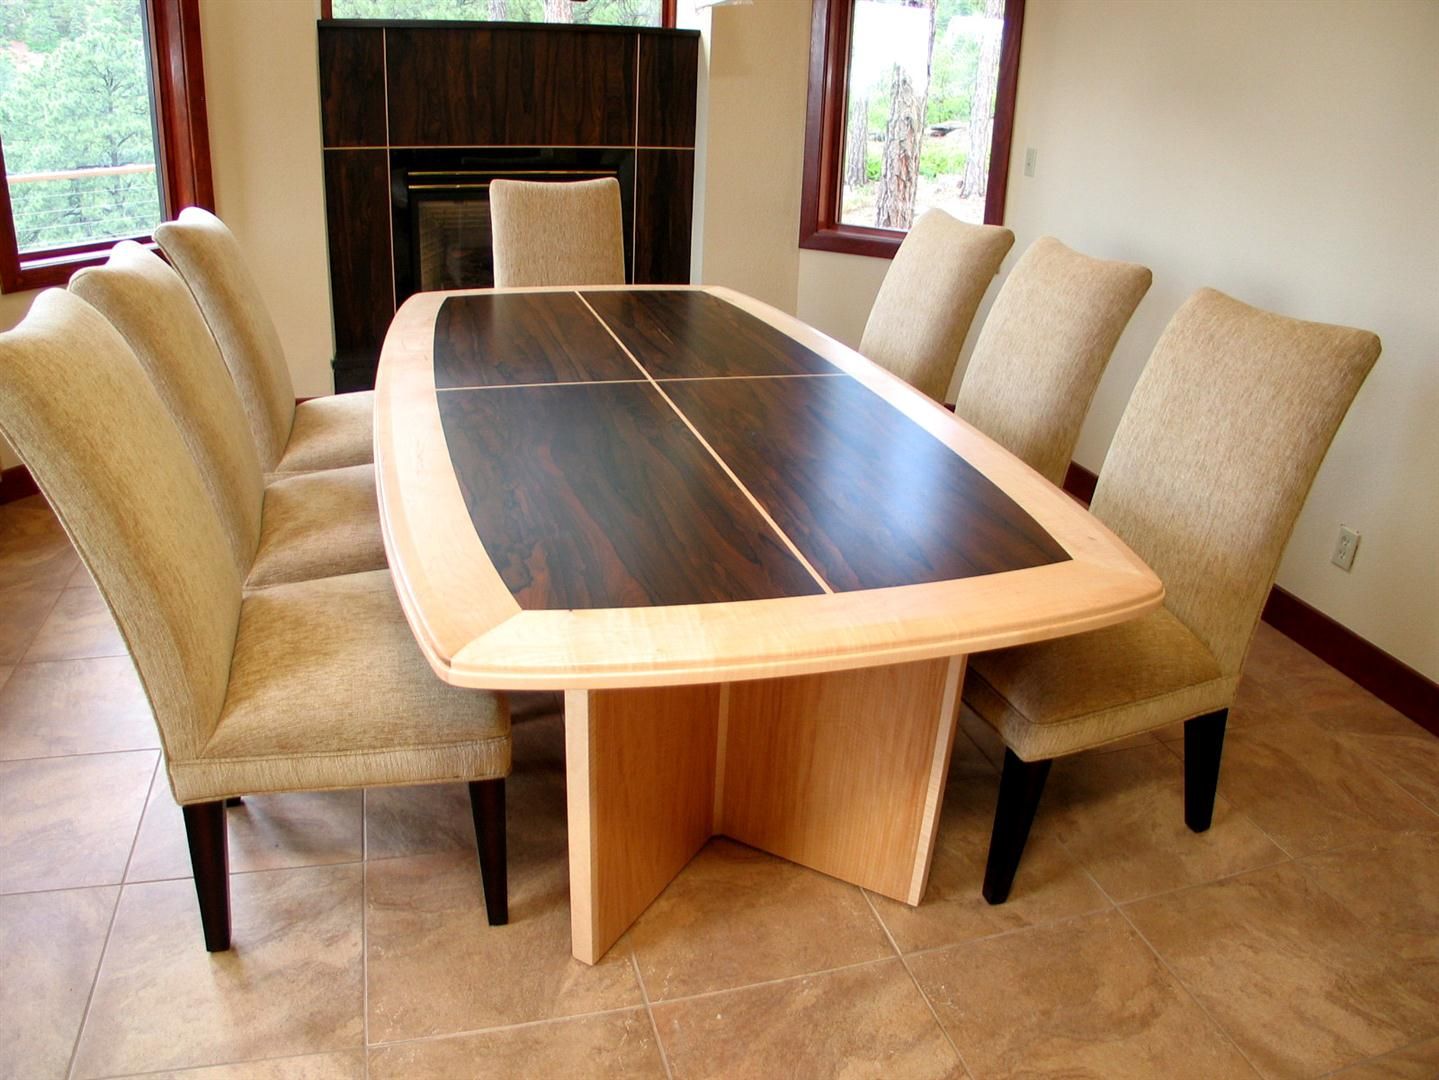 Custom Built Dining Table - Bocote and Maple